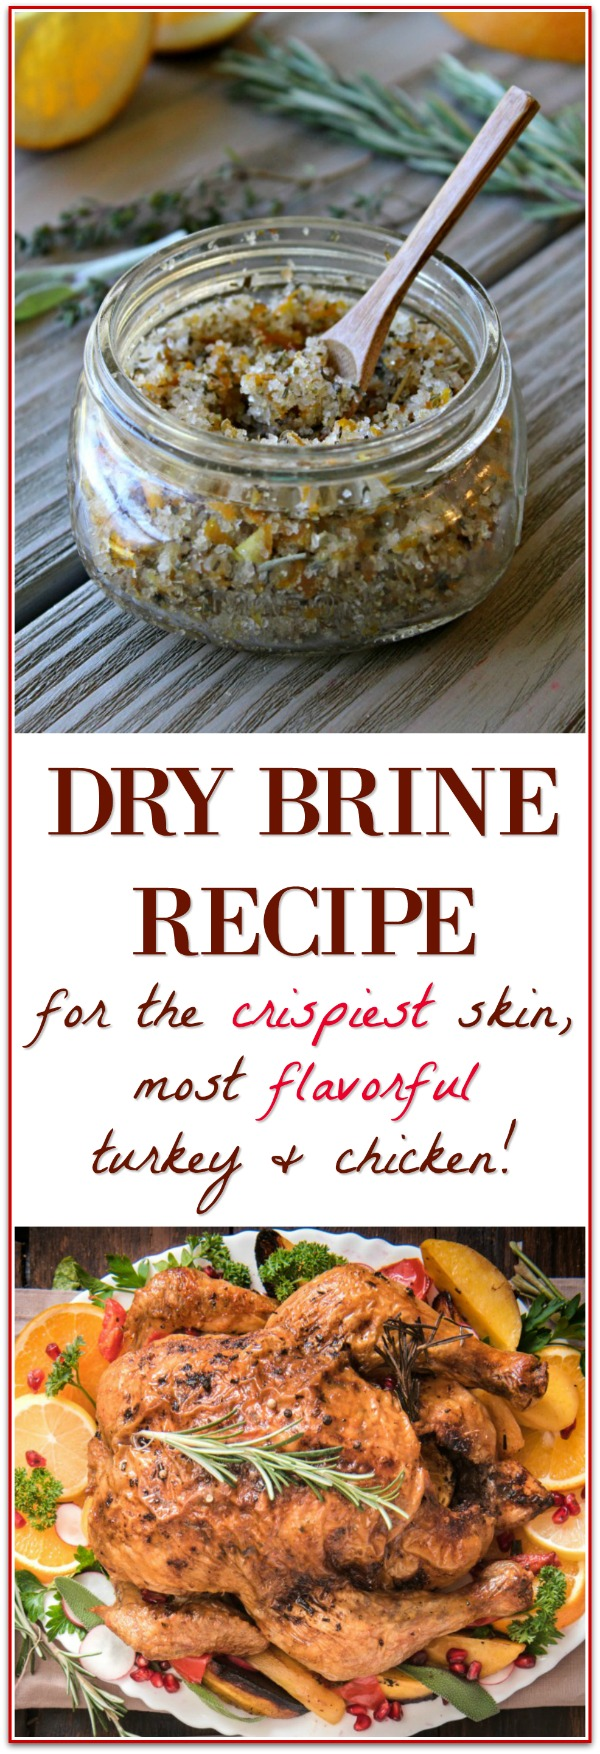 You've got to try this dry brine recipe - it makes the most flavorful and crispy skin turkey and chicken!!!